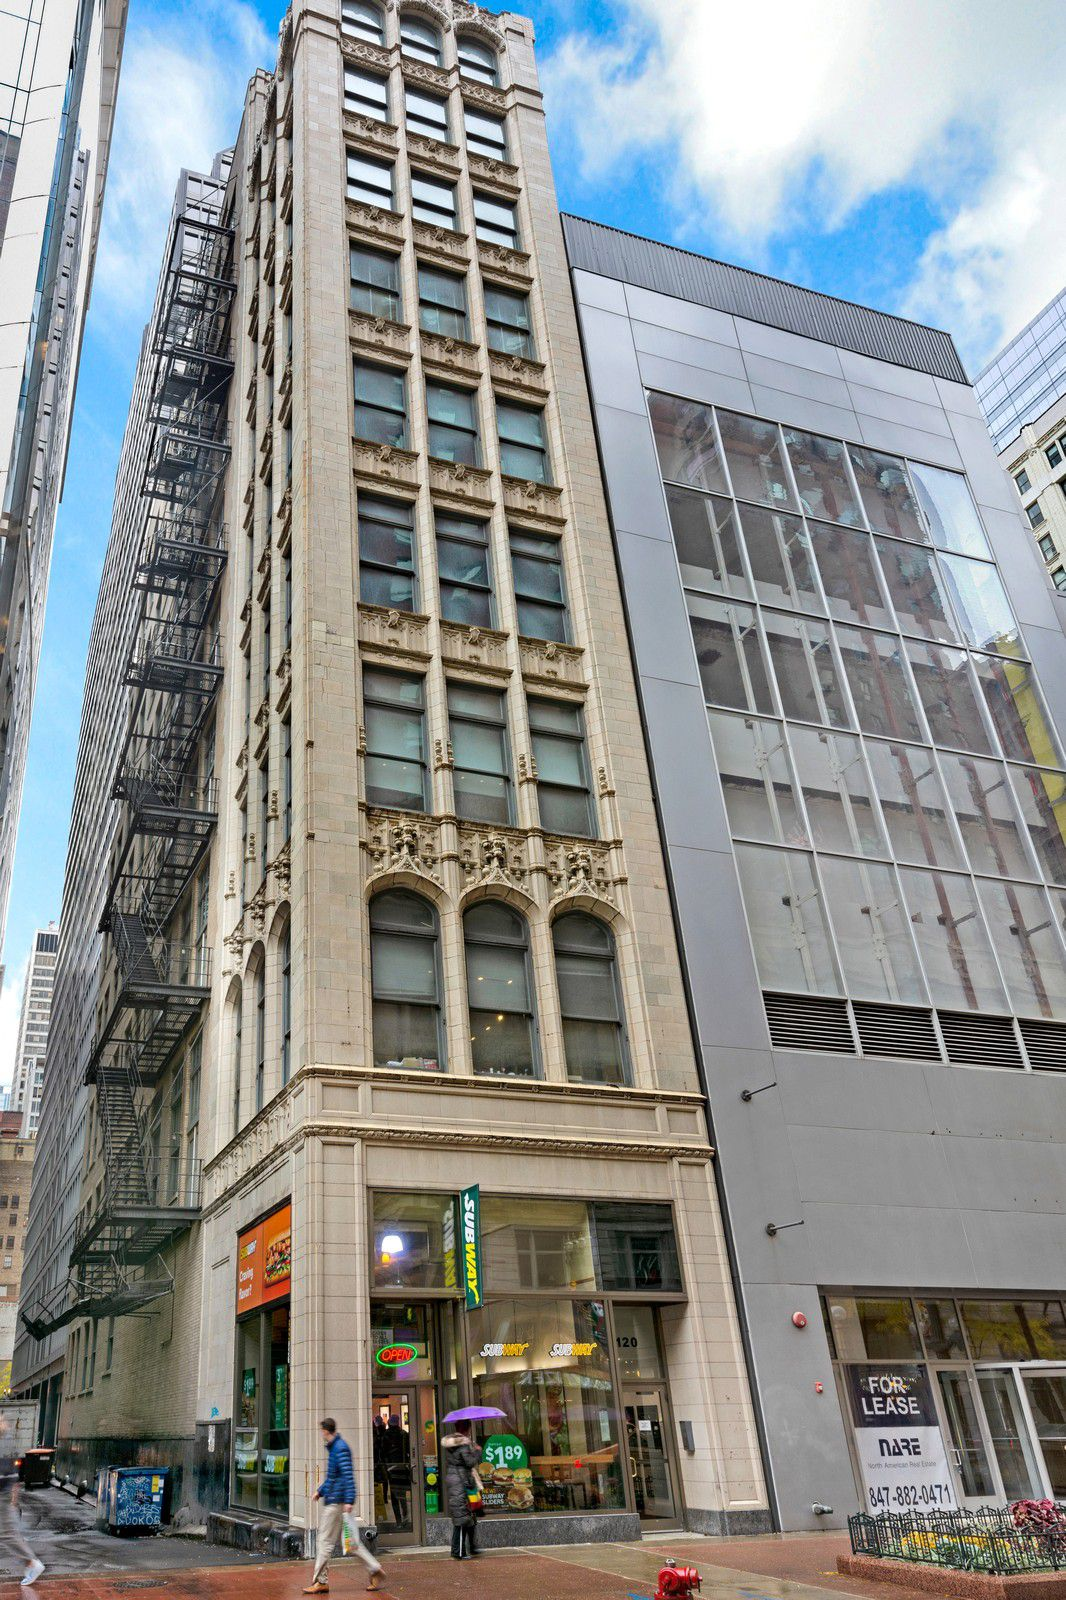 A historic office building in a dense urban setting. There is gothic details on the exterior and a metal fire escape over the alleway.